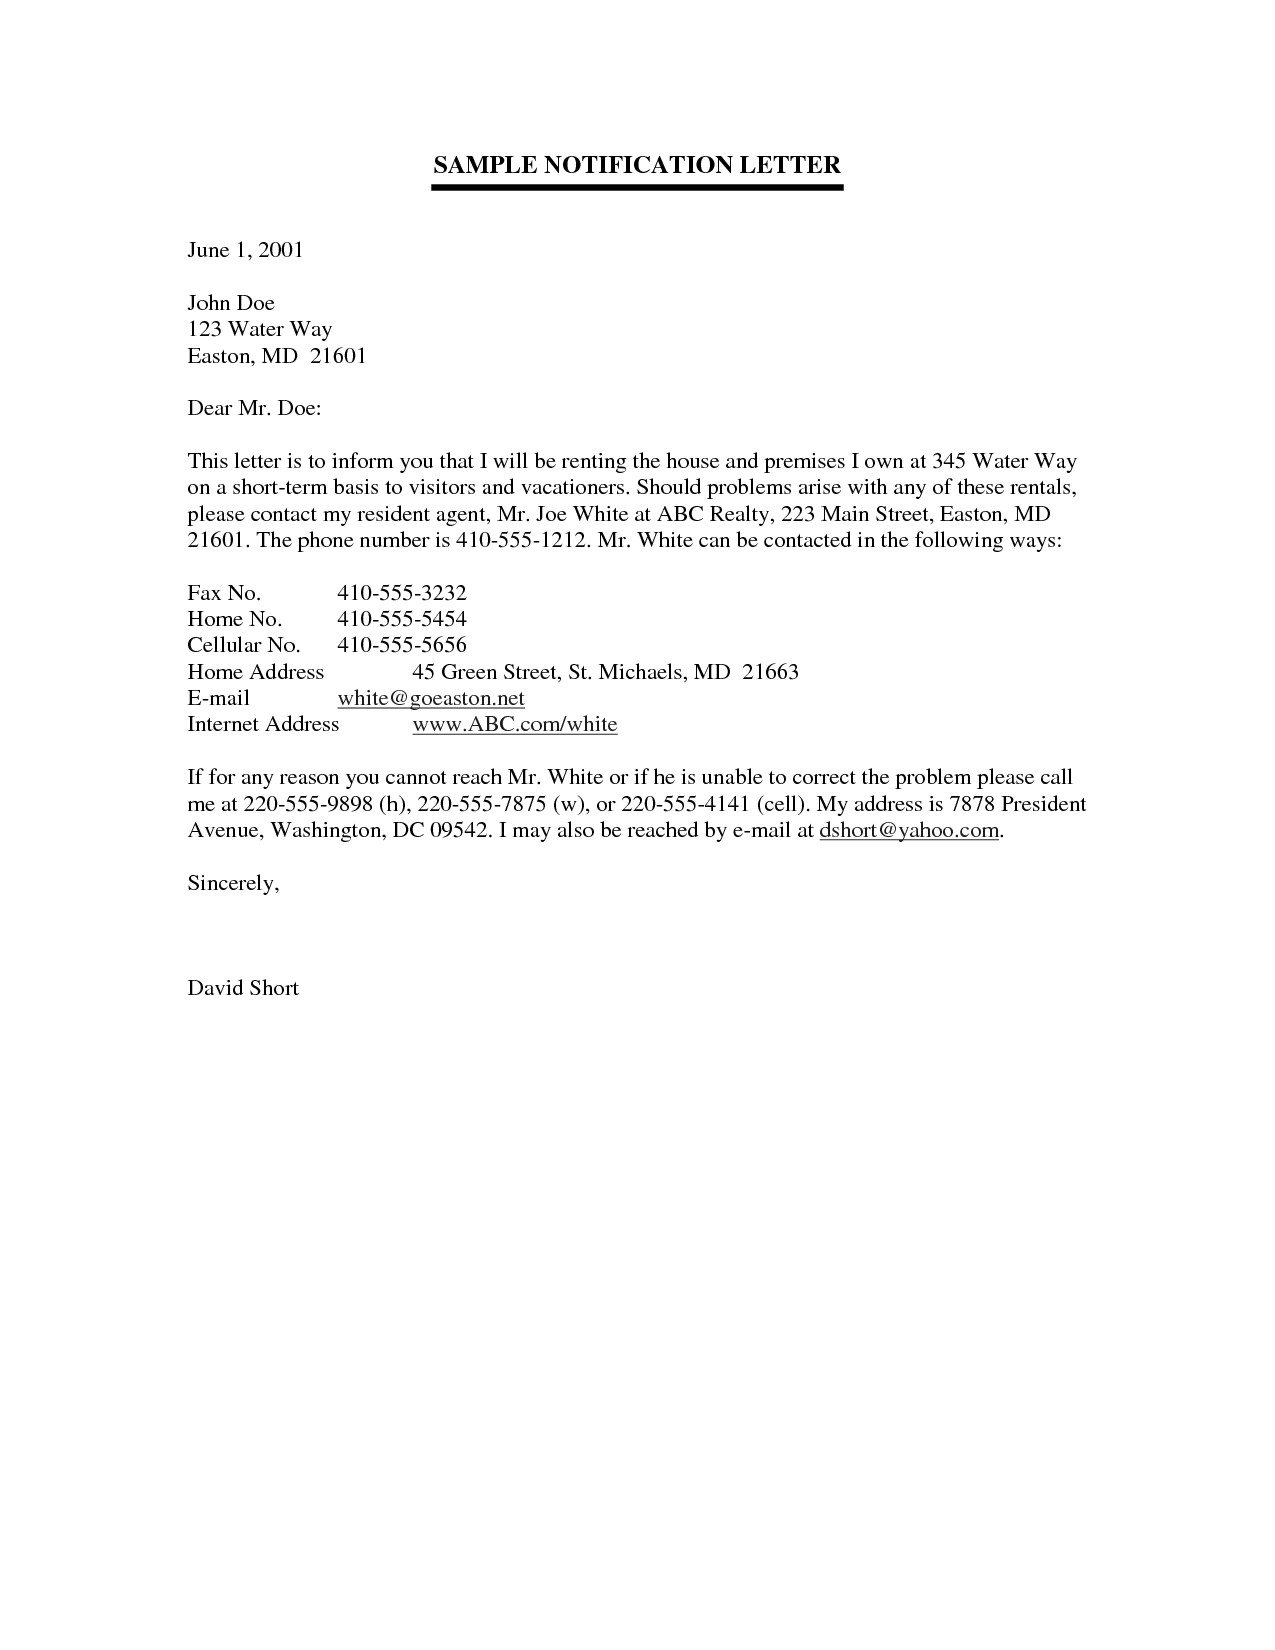 post examples of notification letters 449026